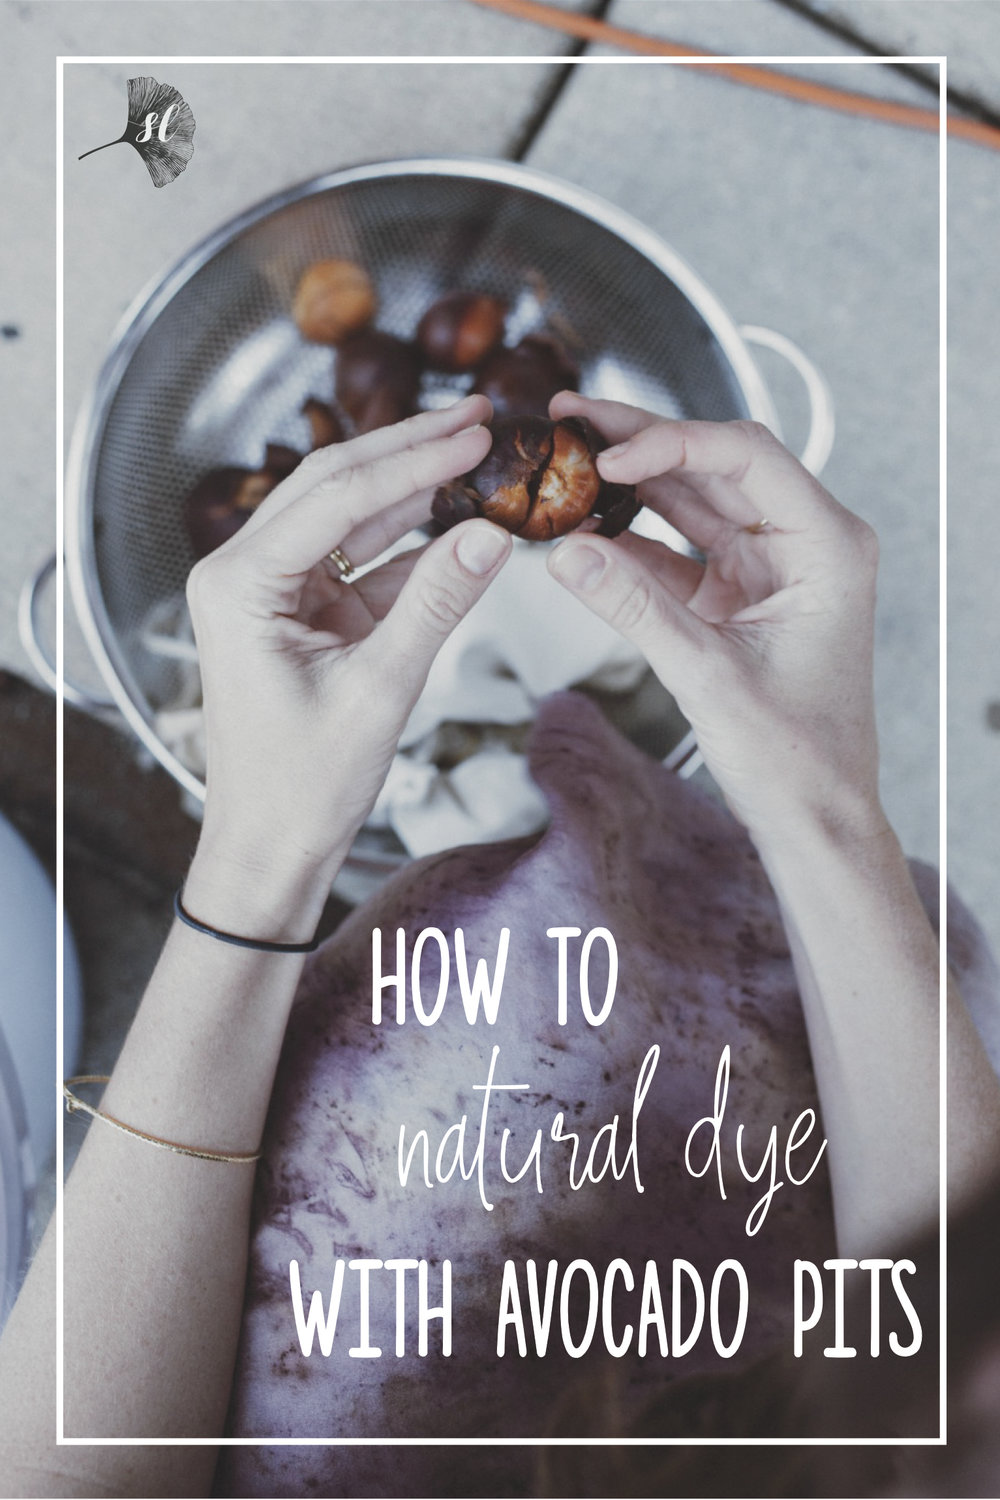 How to natural dye with avocado pits